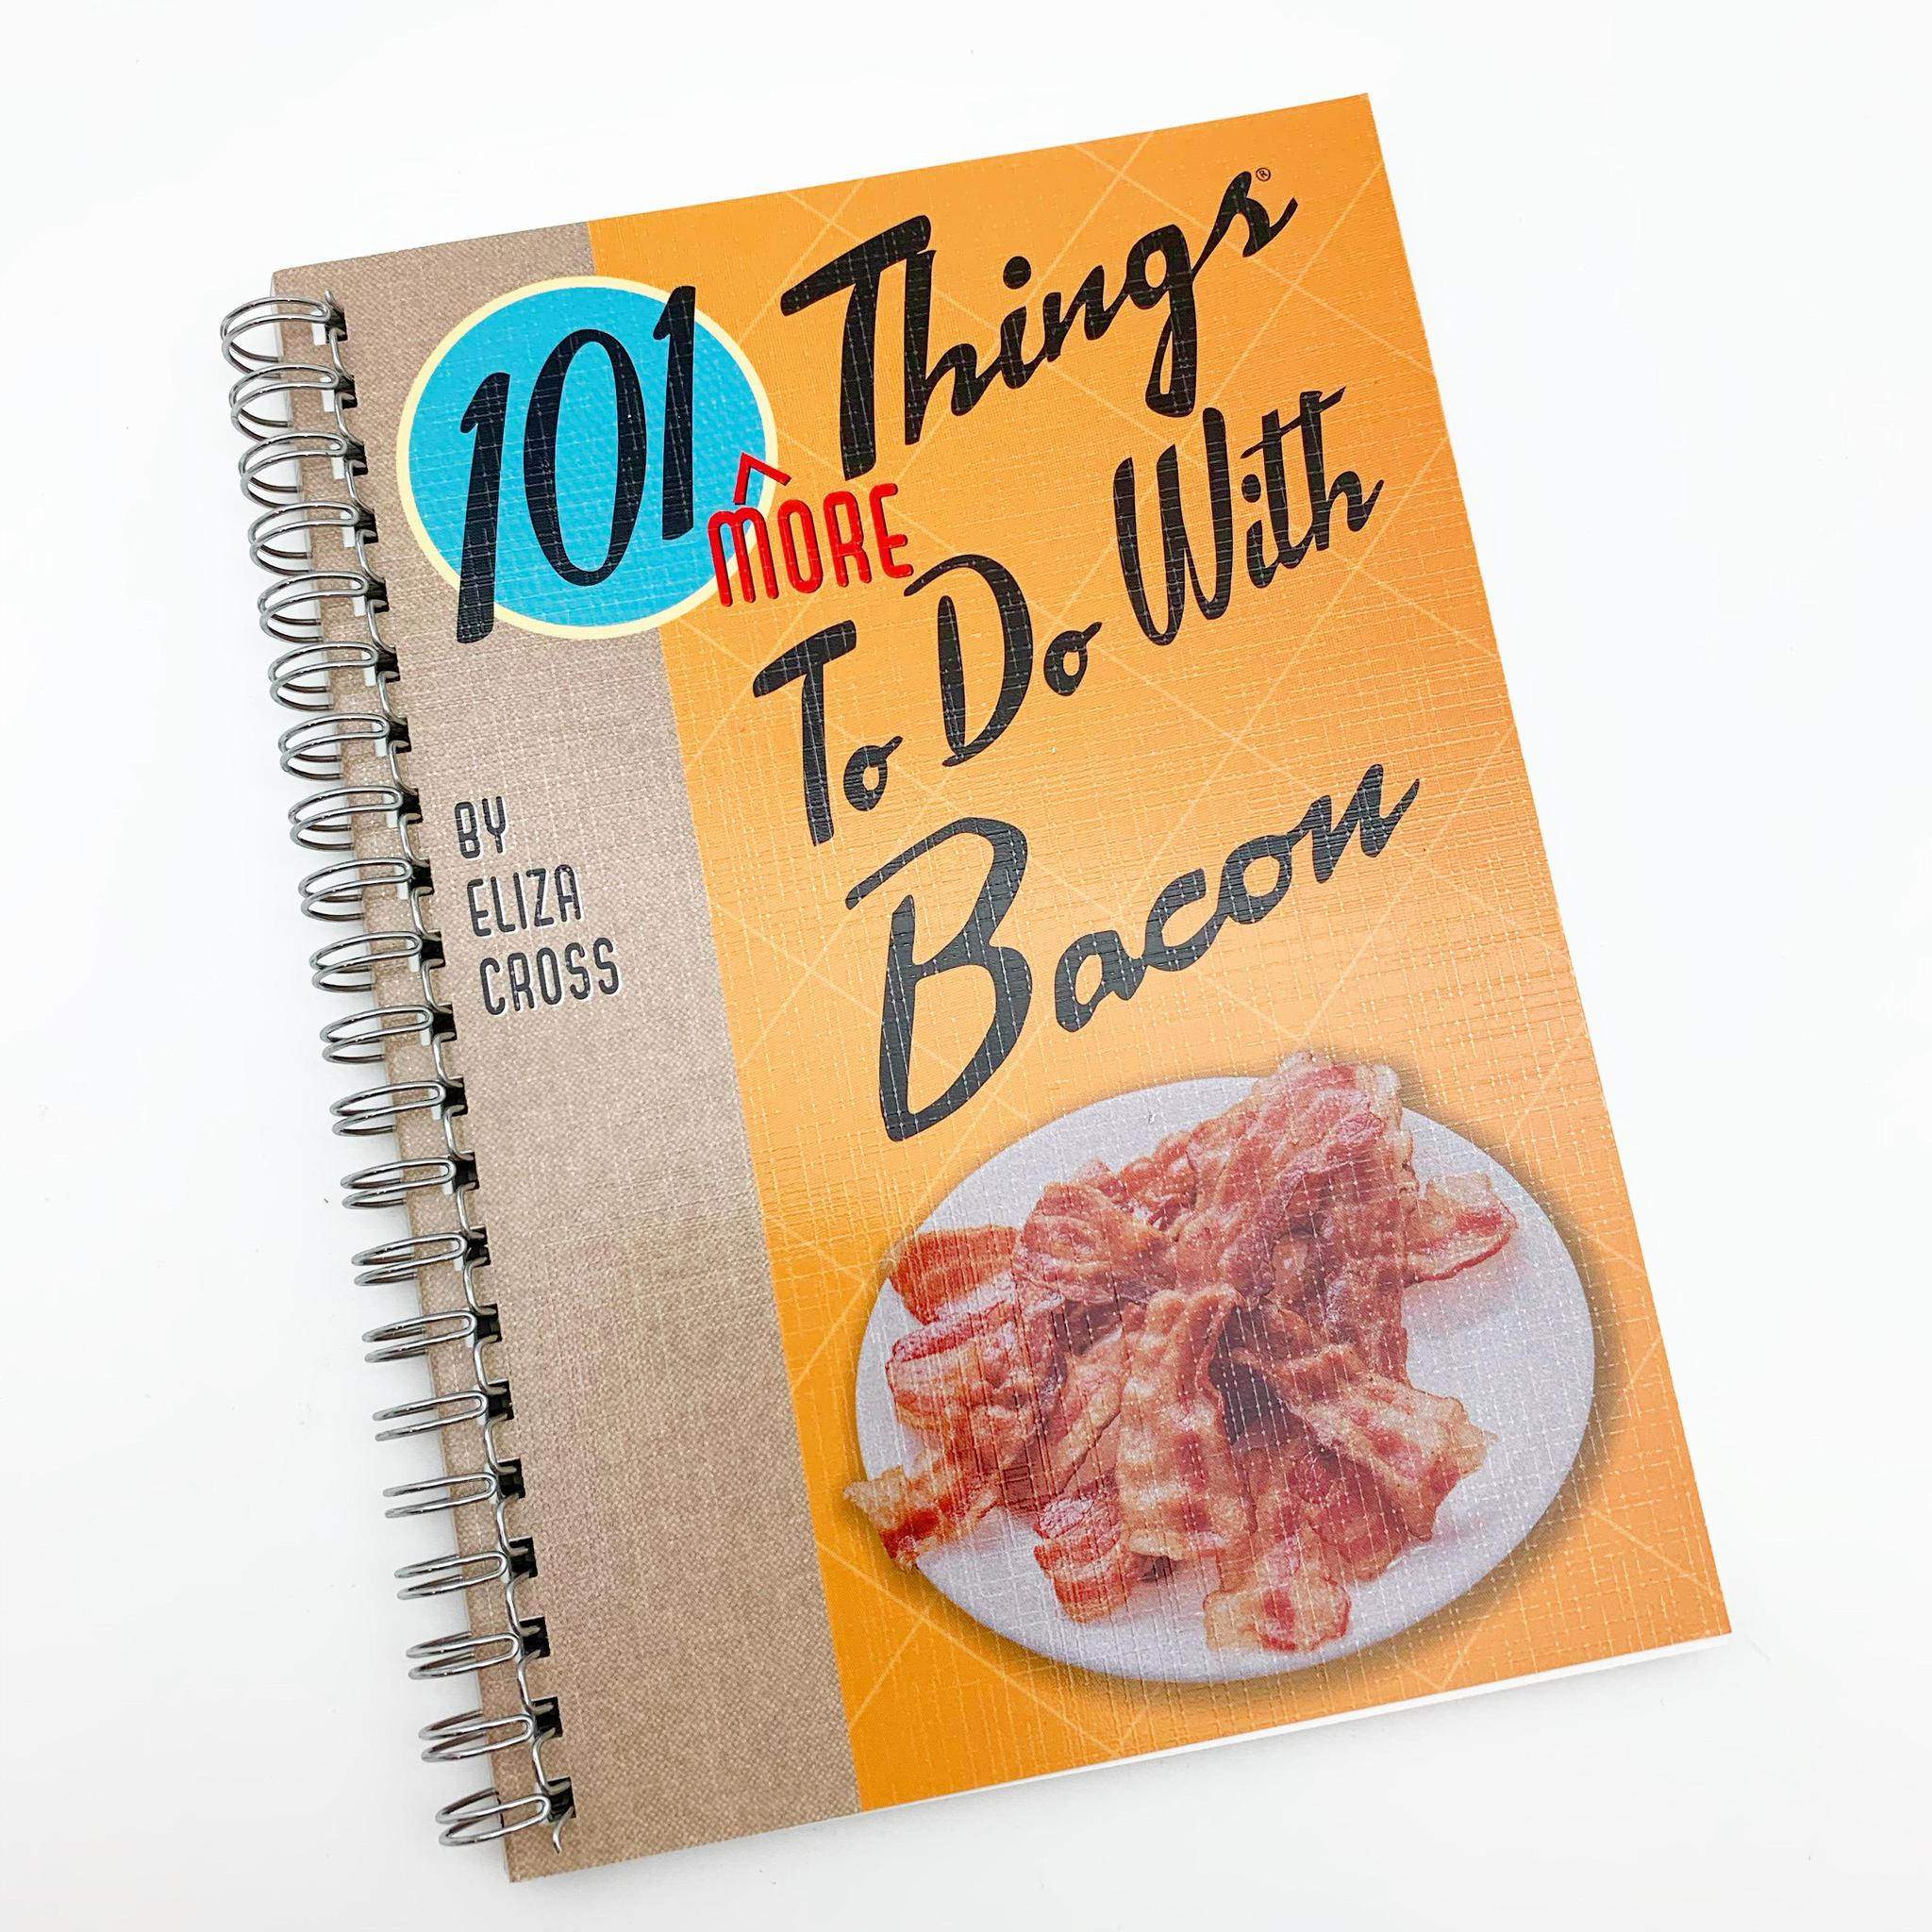 Book - 101 (More) Things to Do with Bacon